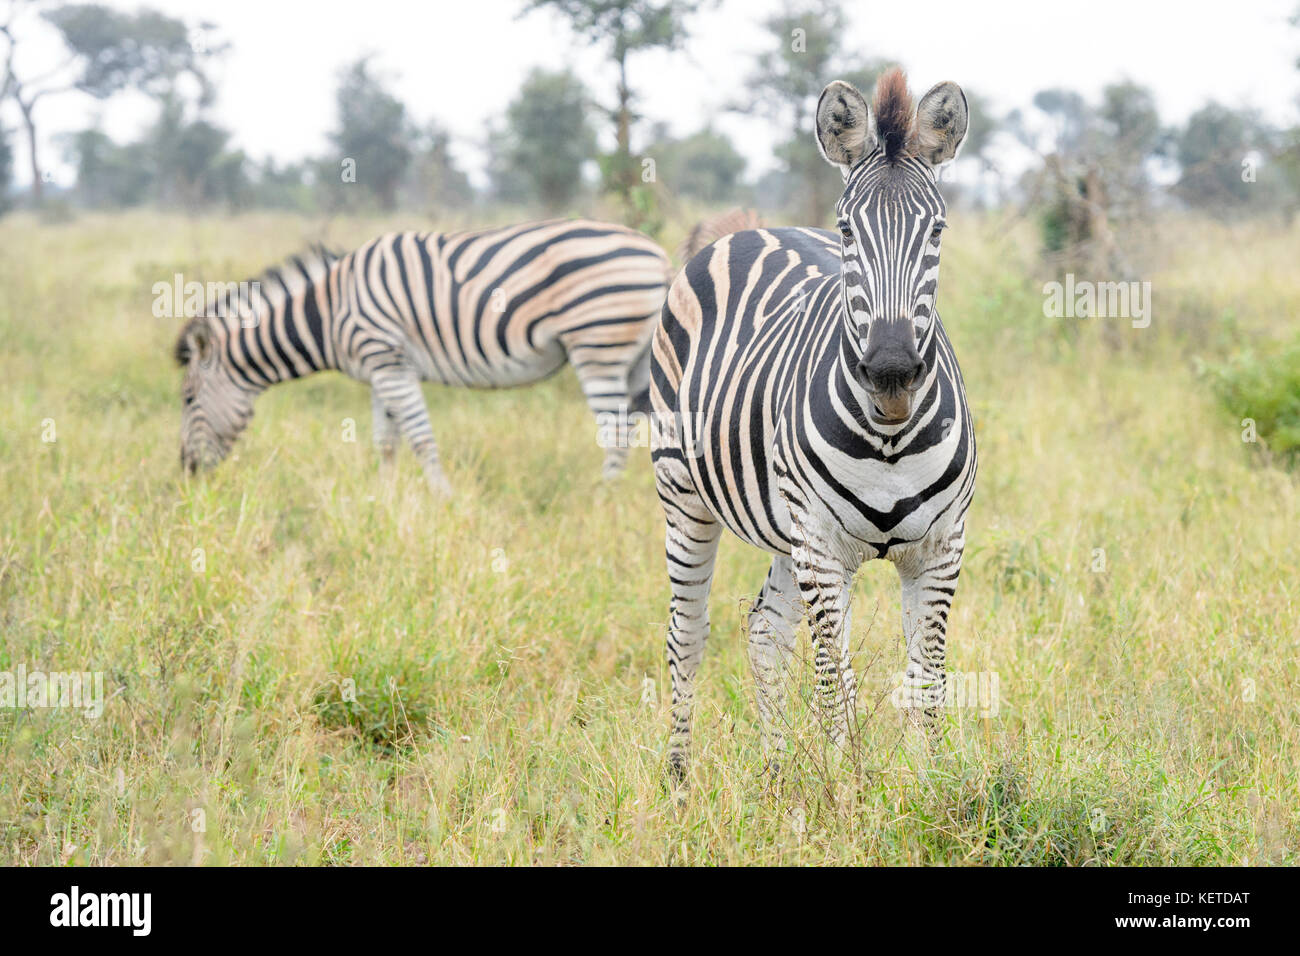 Burchell's zebra or Plains zebra (Equus quagga), looking at camera, Kruger National Park, South Africa - Stock Image